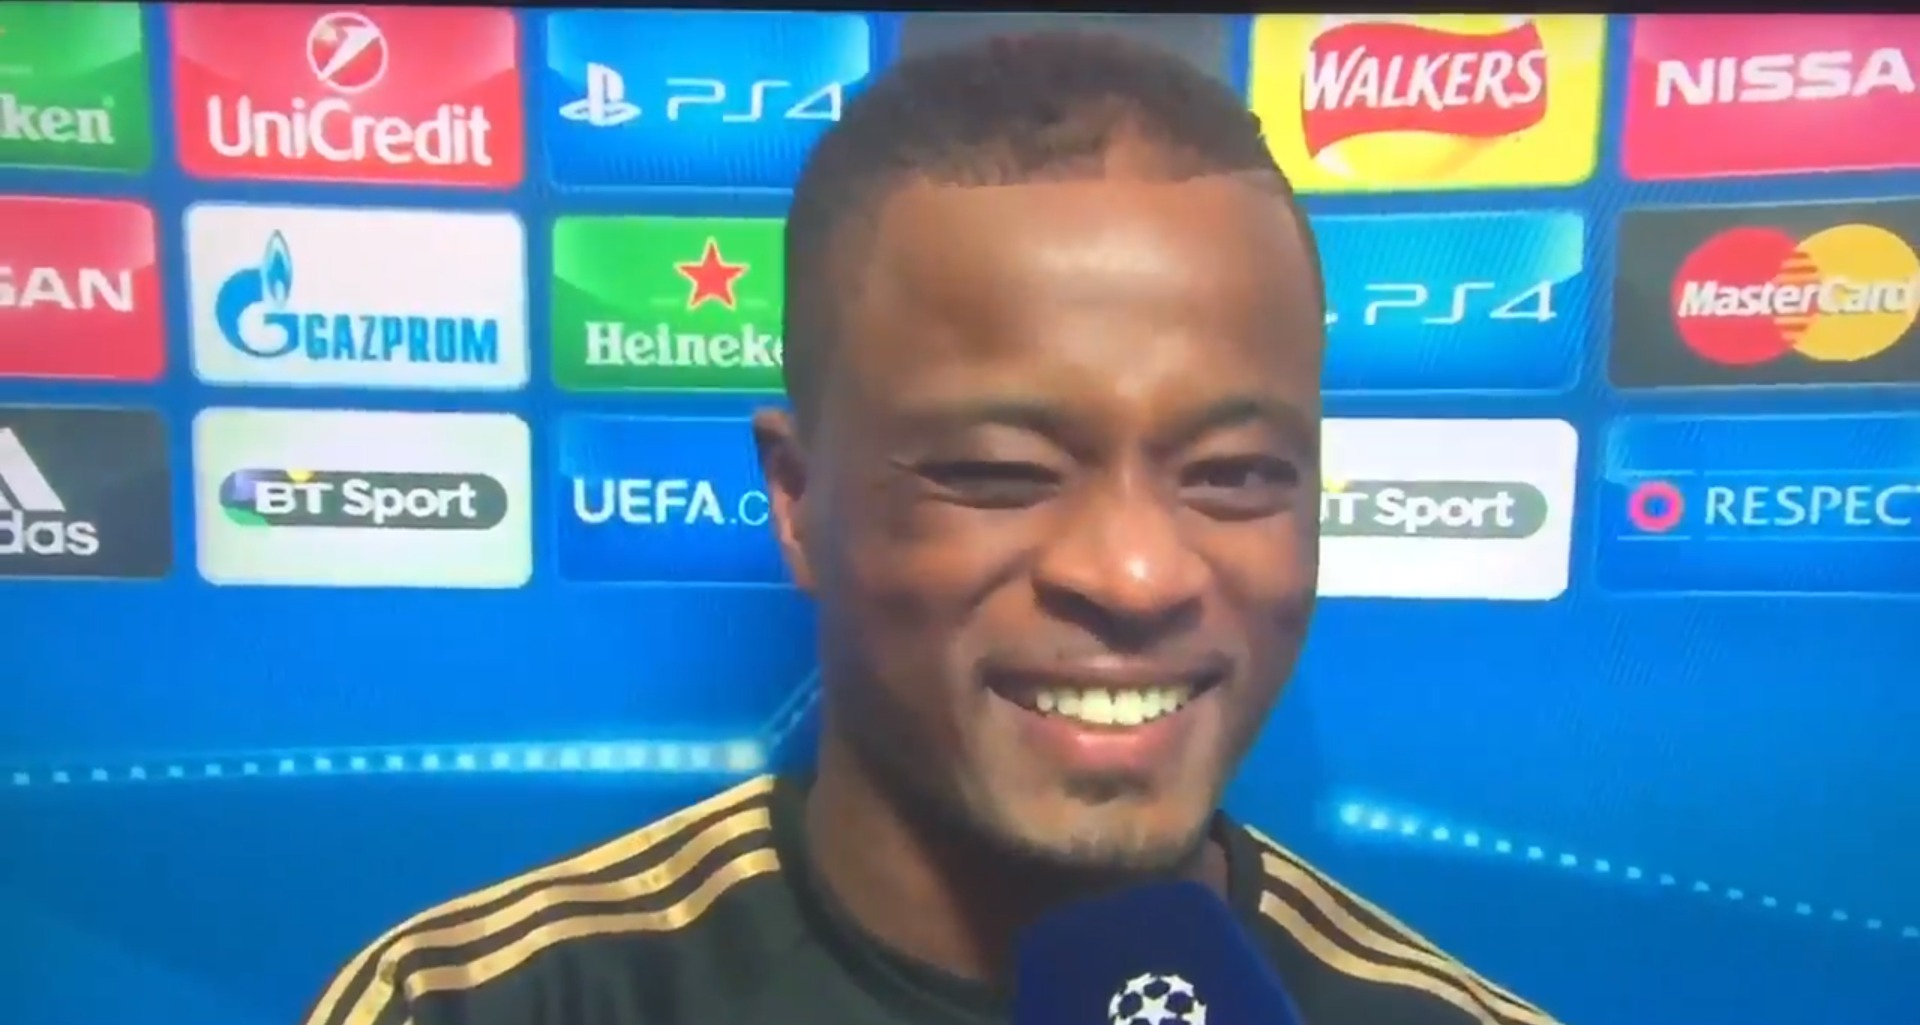 Manchester United legend Patrice Evra says he's a Red forever ahead of Juventus v Manchester City